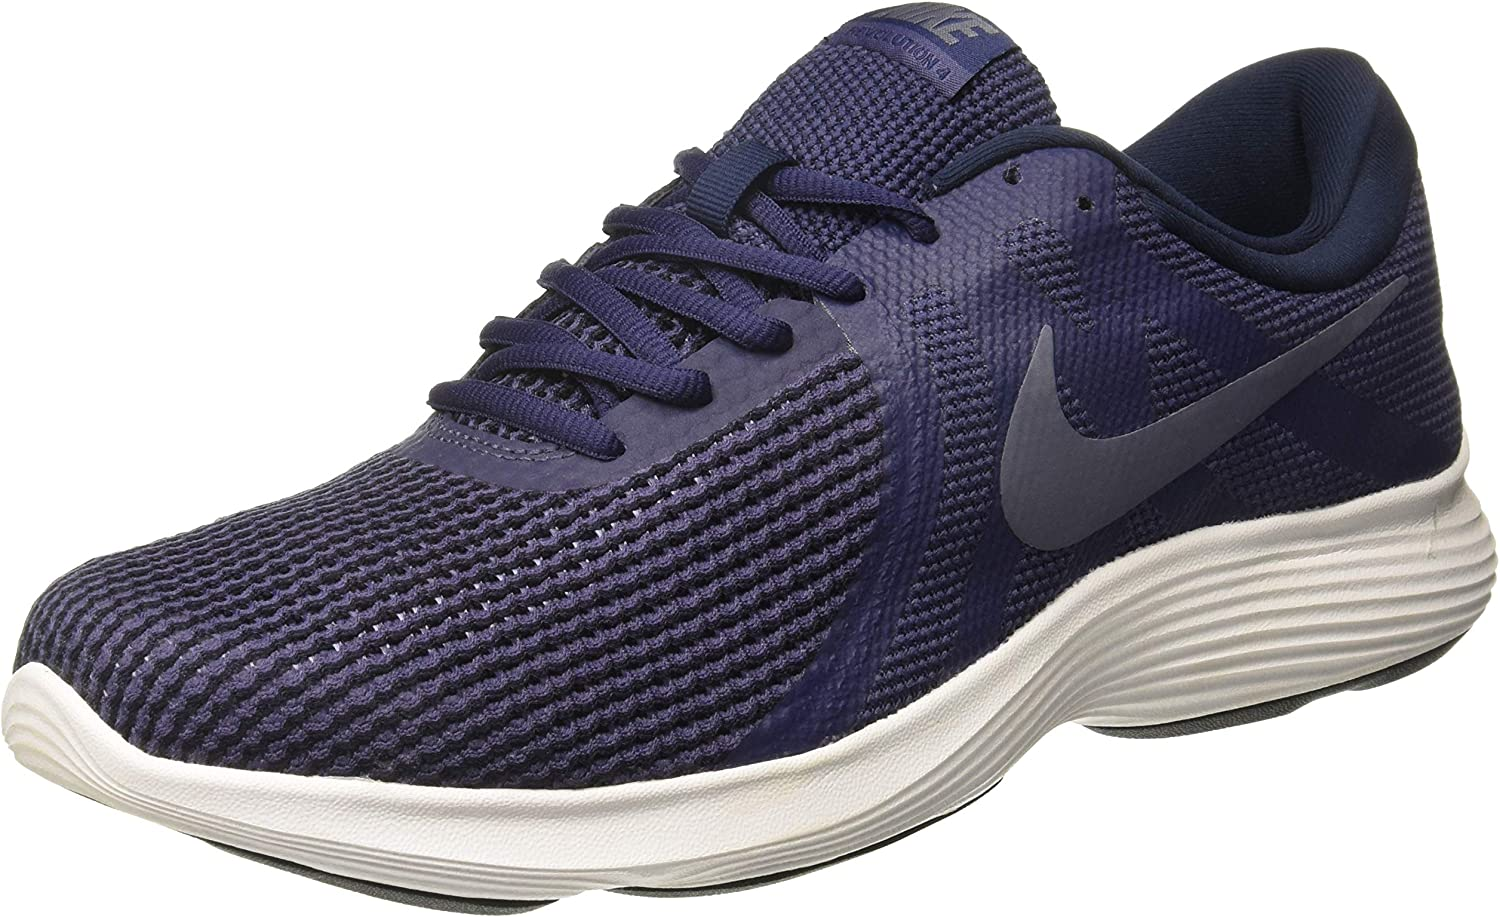 Nike Men s Revolution 4 Running Shoe Neutral Indigo Light Carbon Obsidian Size 13 M US